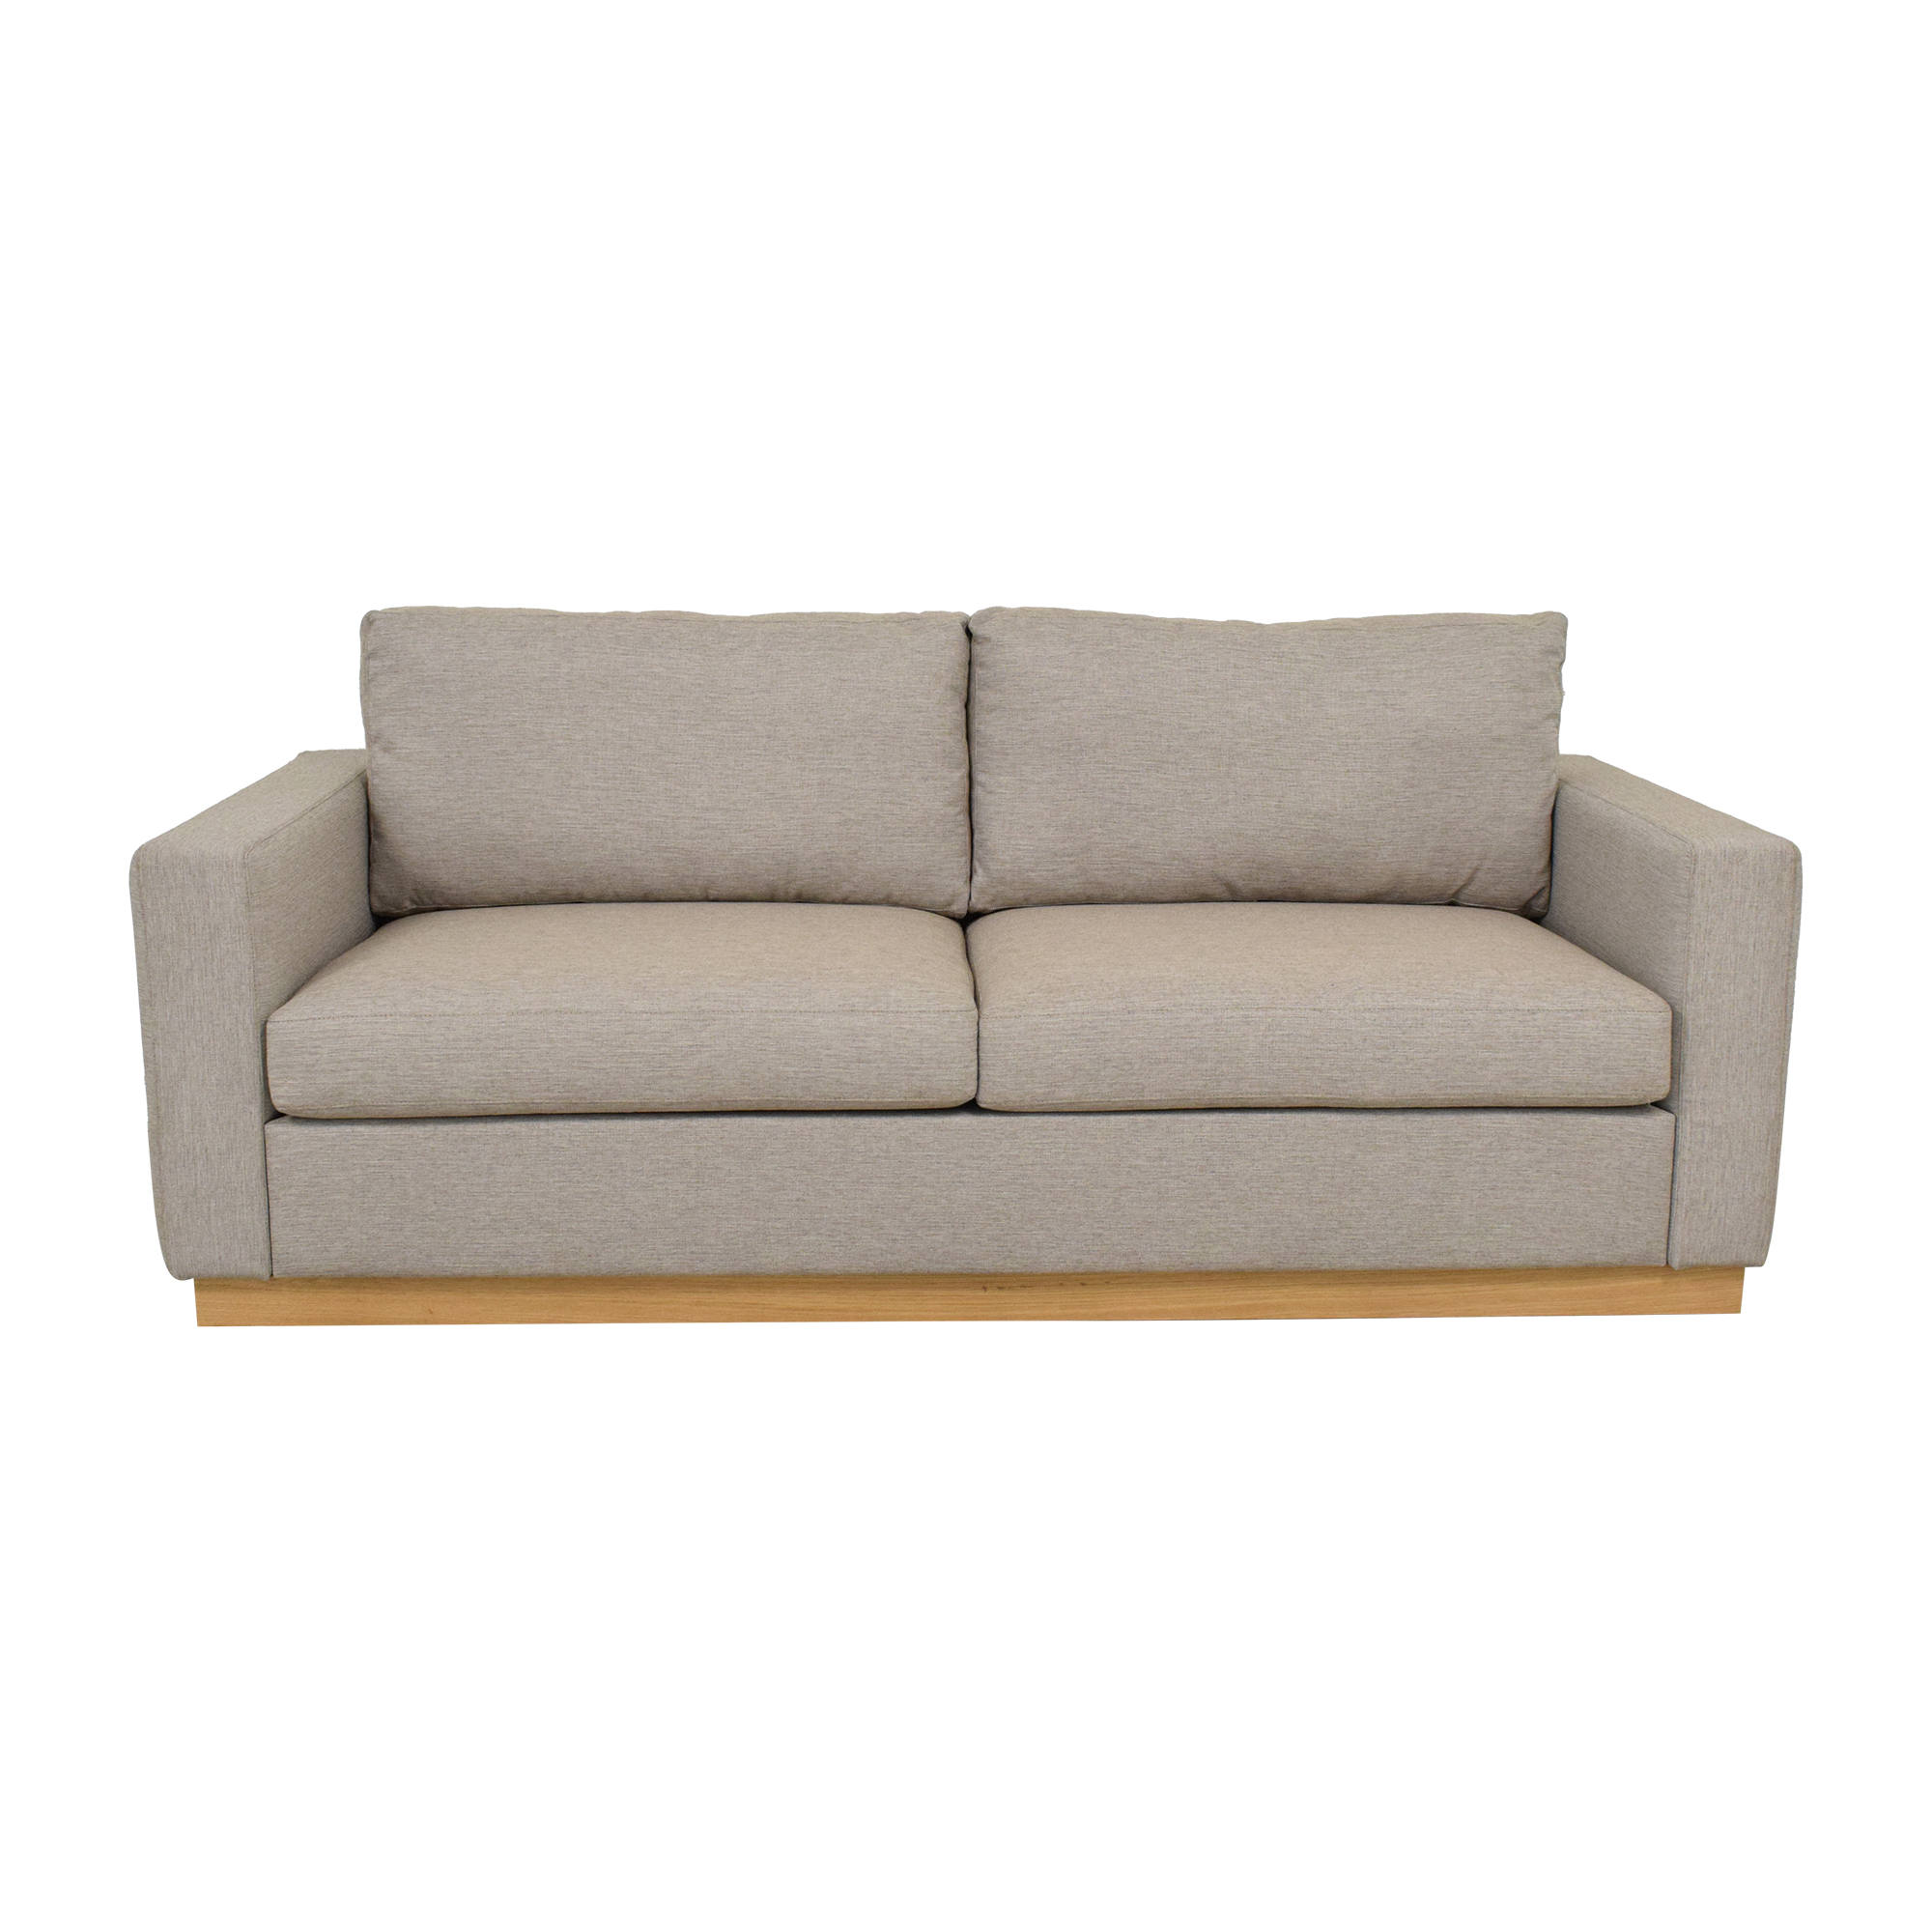 Modern Two Cushion Sofa with Wooden Base price